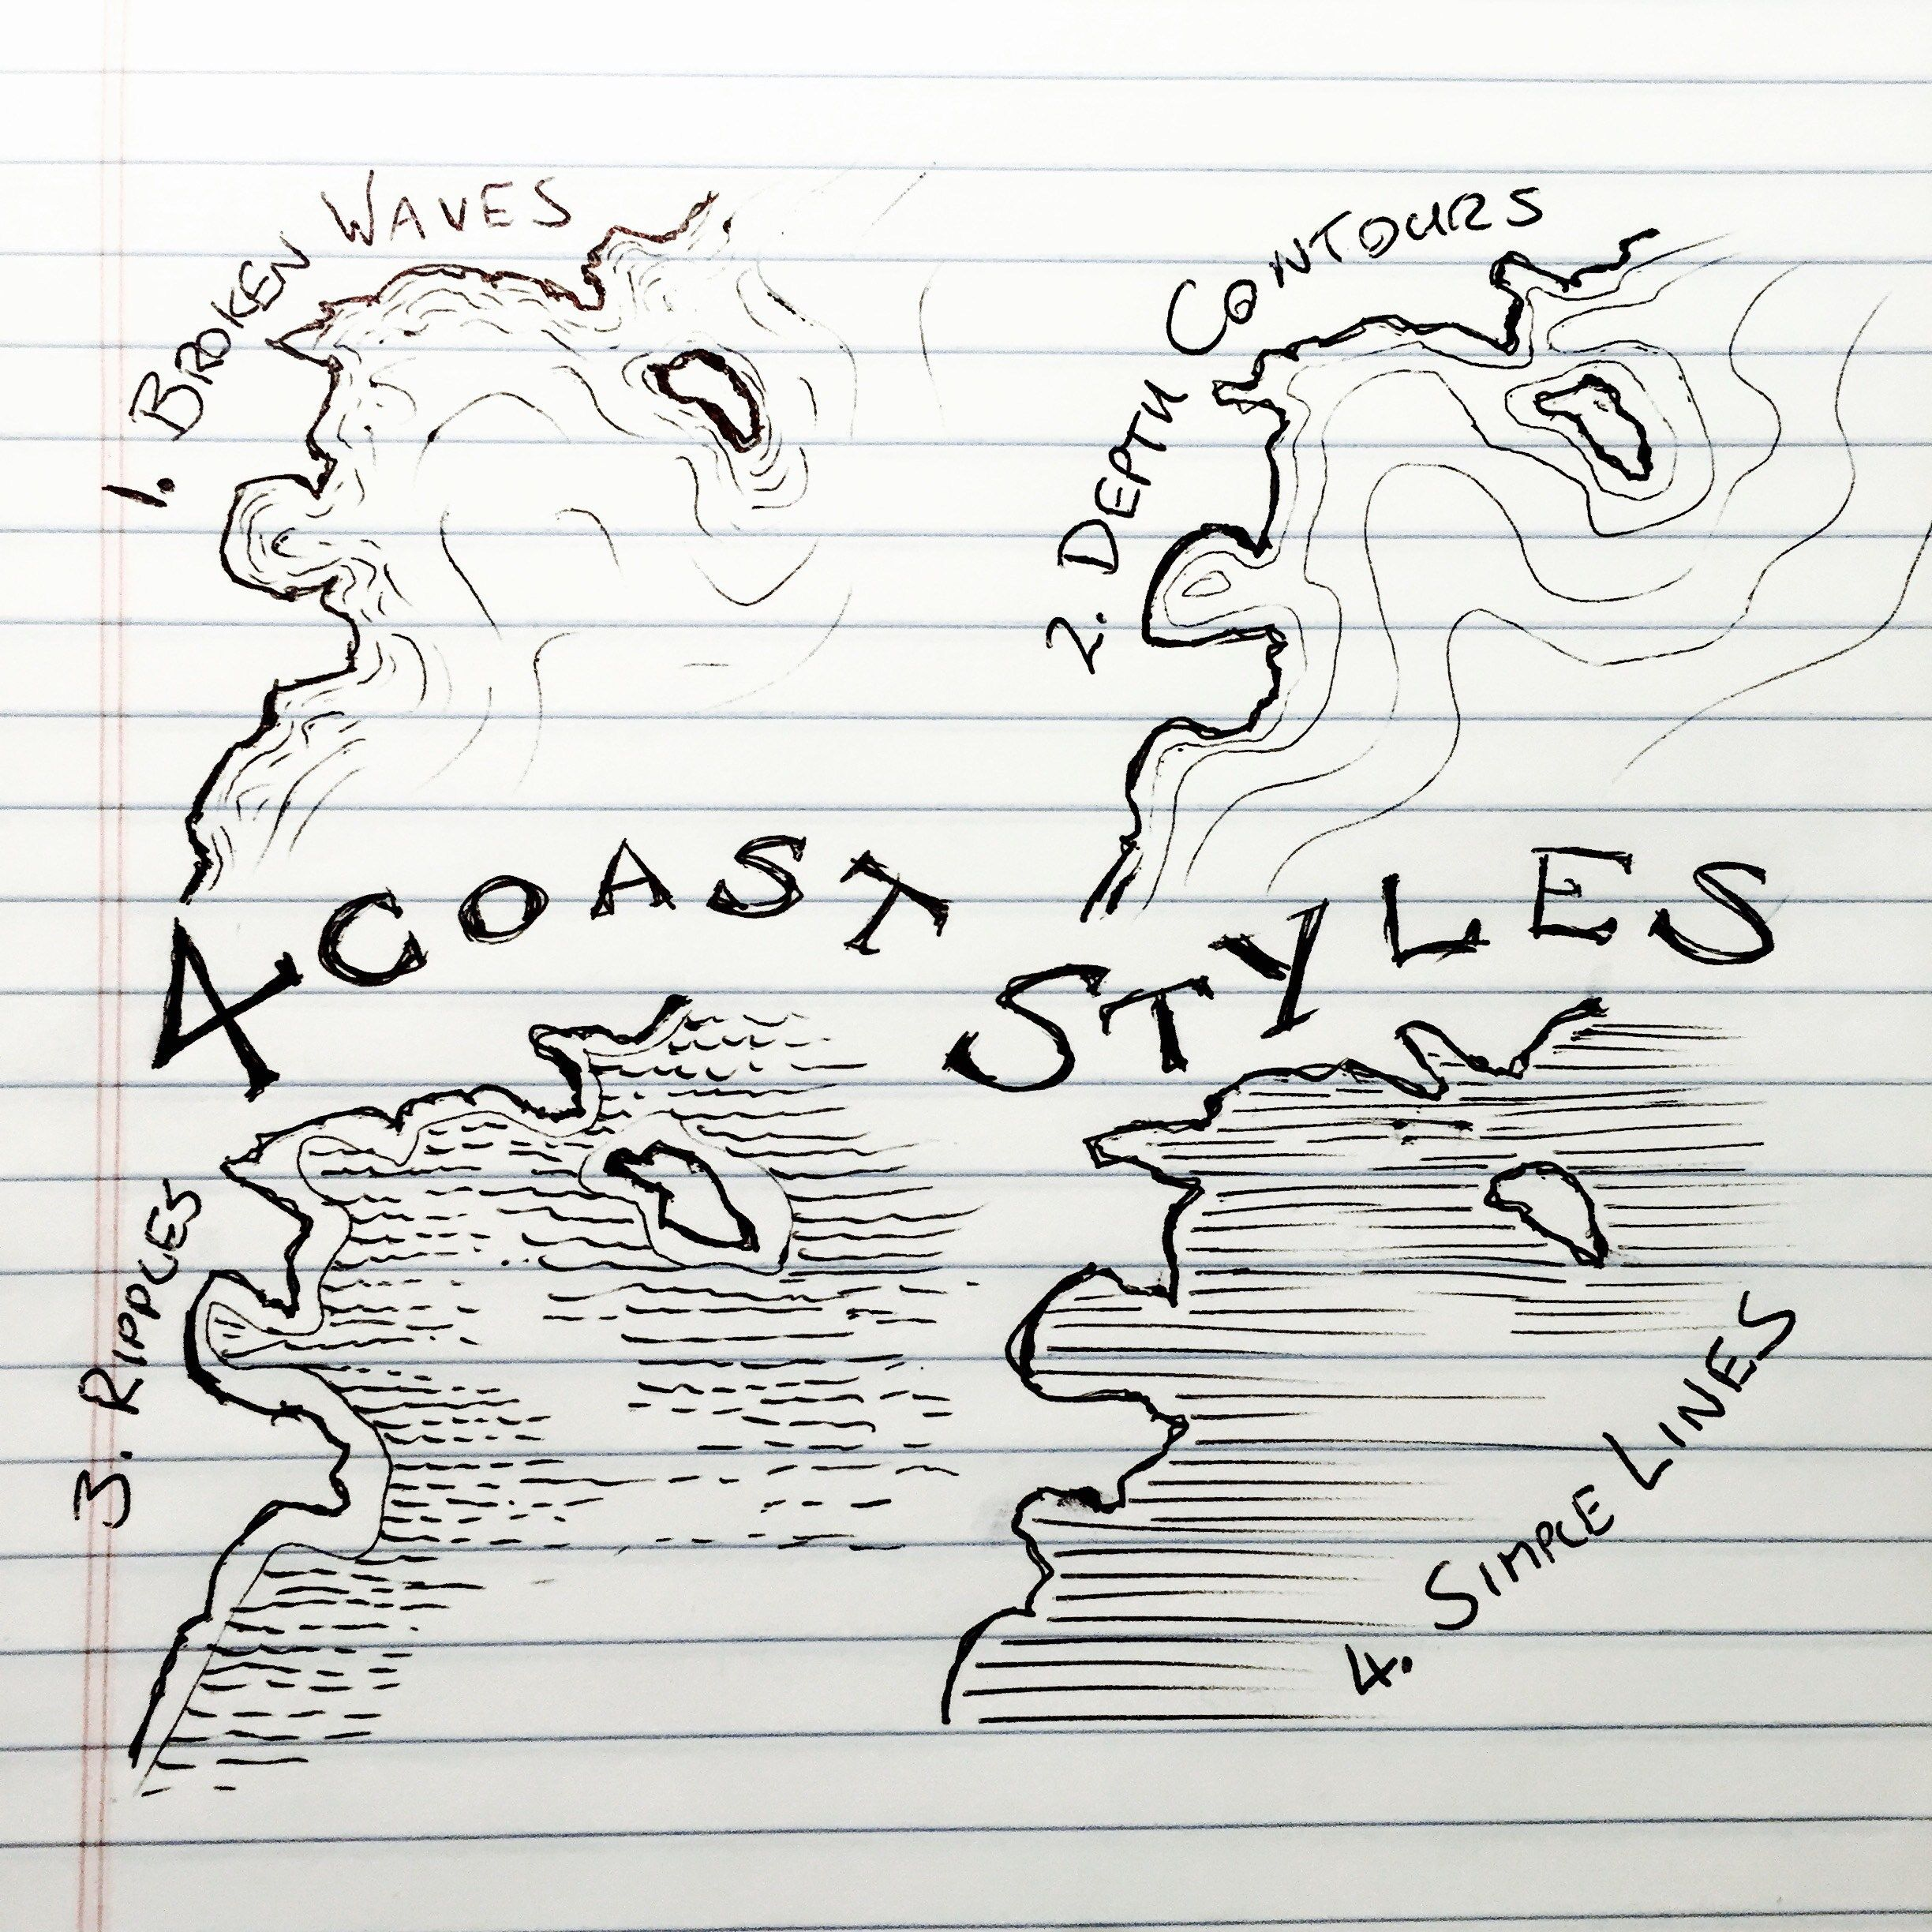 4 Coast Styles for Mapmaking   Fantasy map making, Fantasy ... on sketching a map, navigating a map, drawing rock cliffs, drawing princess anna, creating a map, showing a map, drawing the csx, treasure map, united states a map, charting a map, drawing ghetto streets, draw a simple map, how do you make a map, making a map, craft a map, wood burning a map, drawing kd 7, drawing about trees, painting a map,